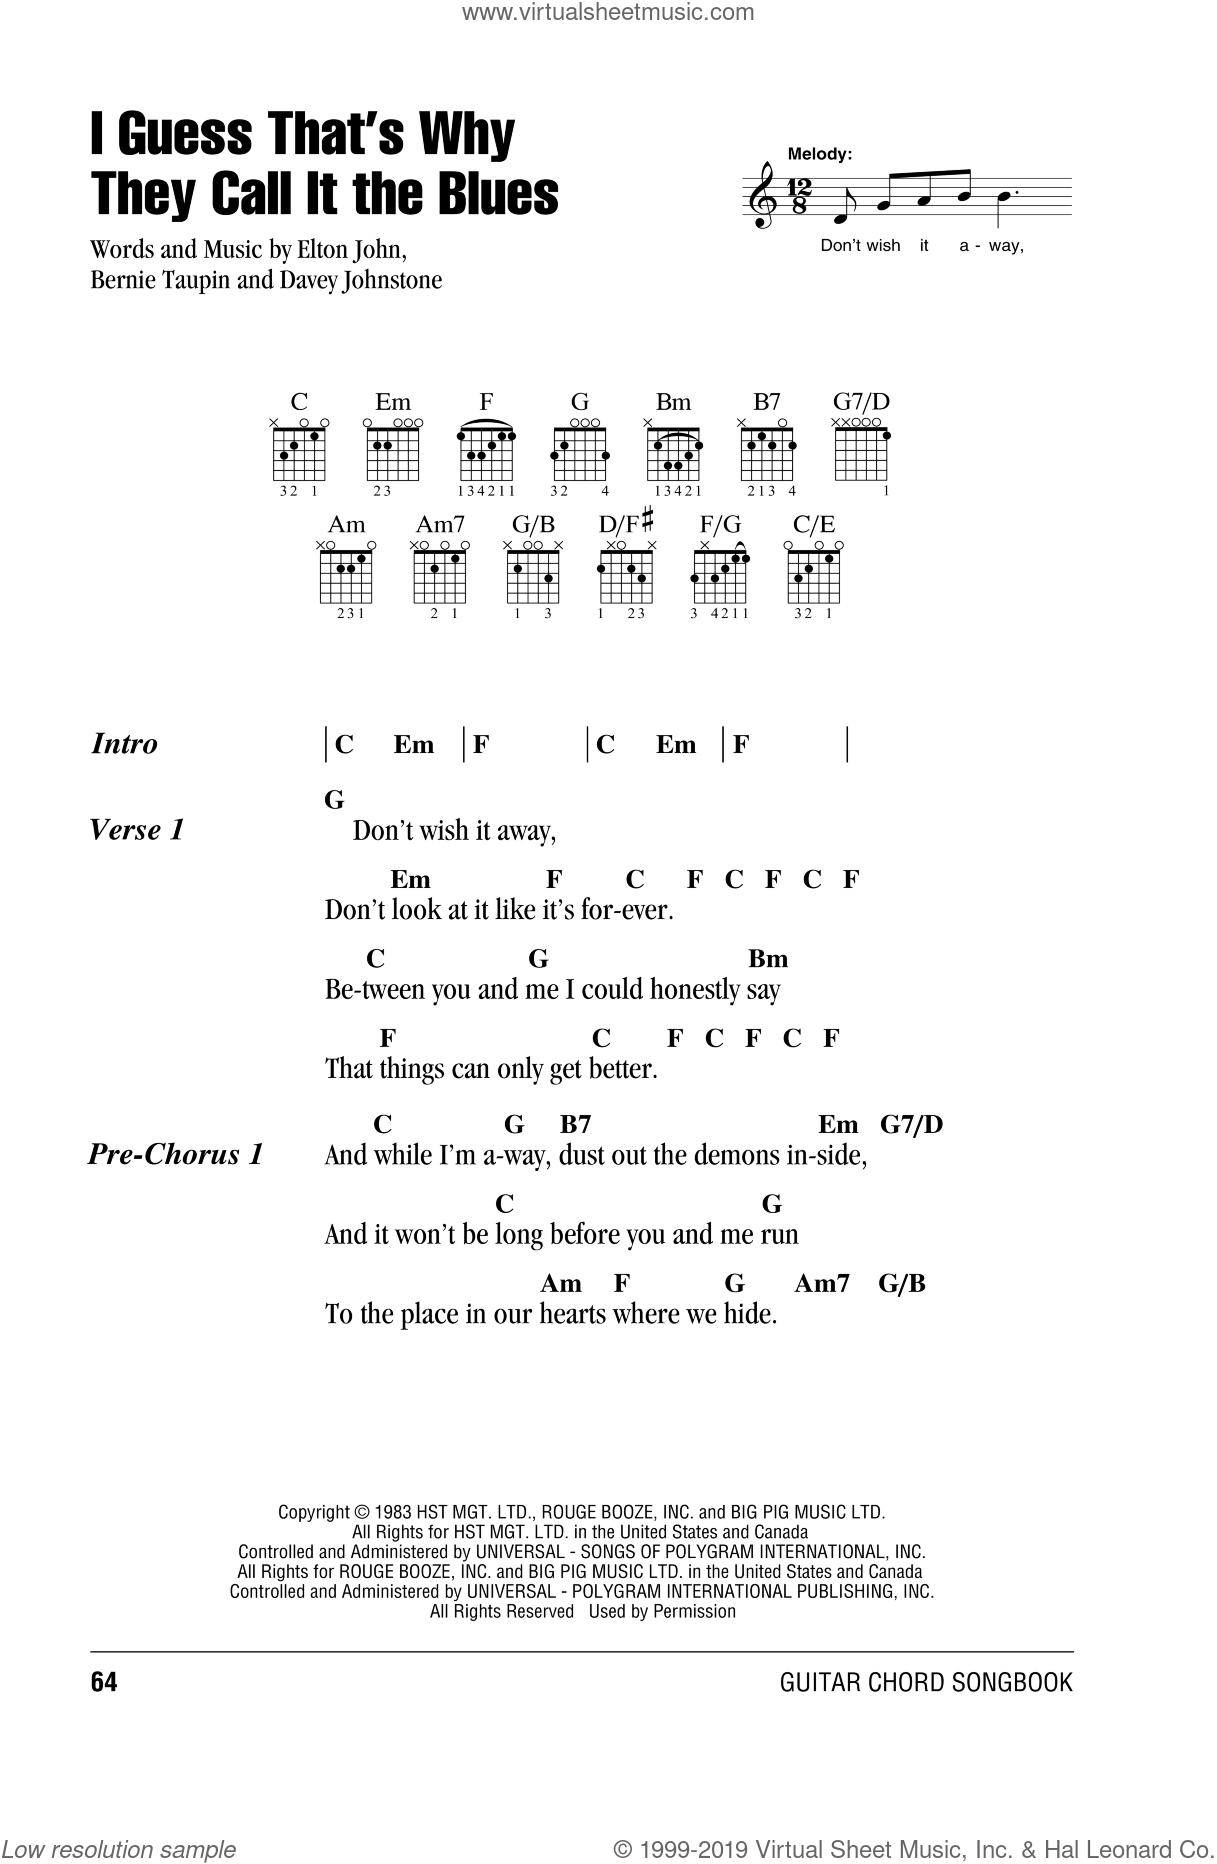 I Guess That's Why They Call It The Blues sheet music for guitar (chords) by Davey Johnstone